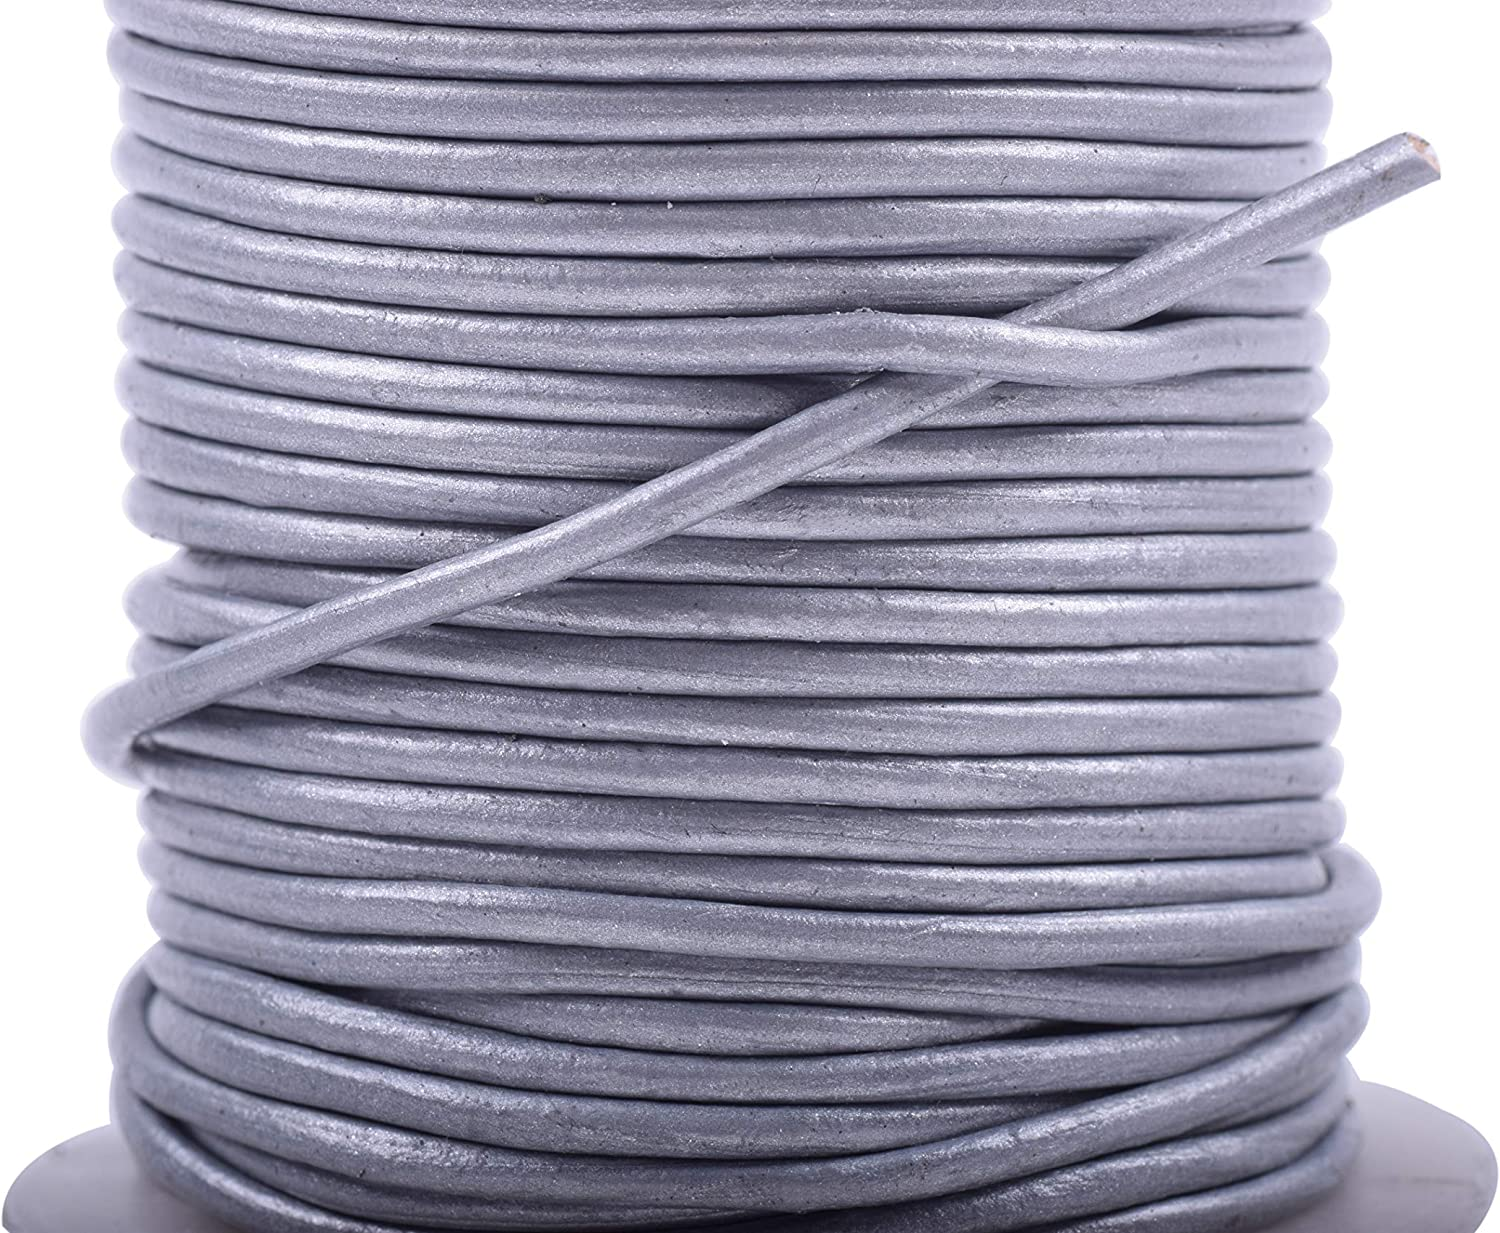 KONMAY 25 Yards Solid Round Genuine//Real Leather Cord Braiding String 1.5mm, Petrol Blue